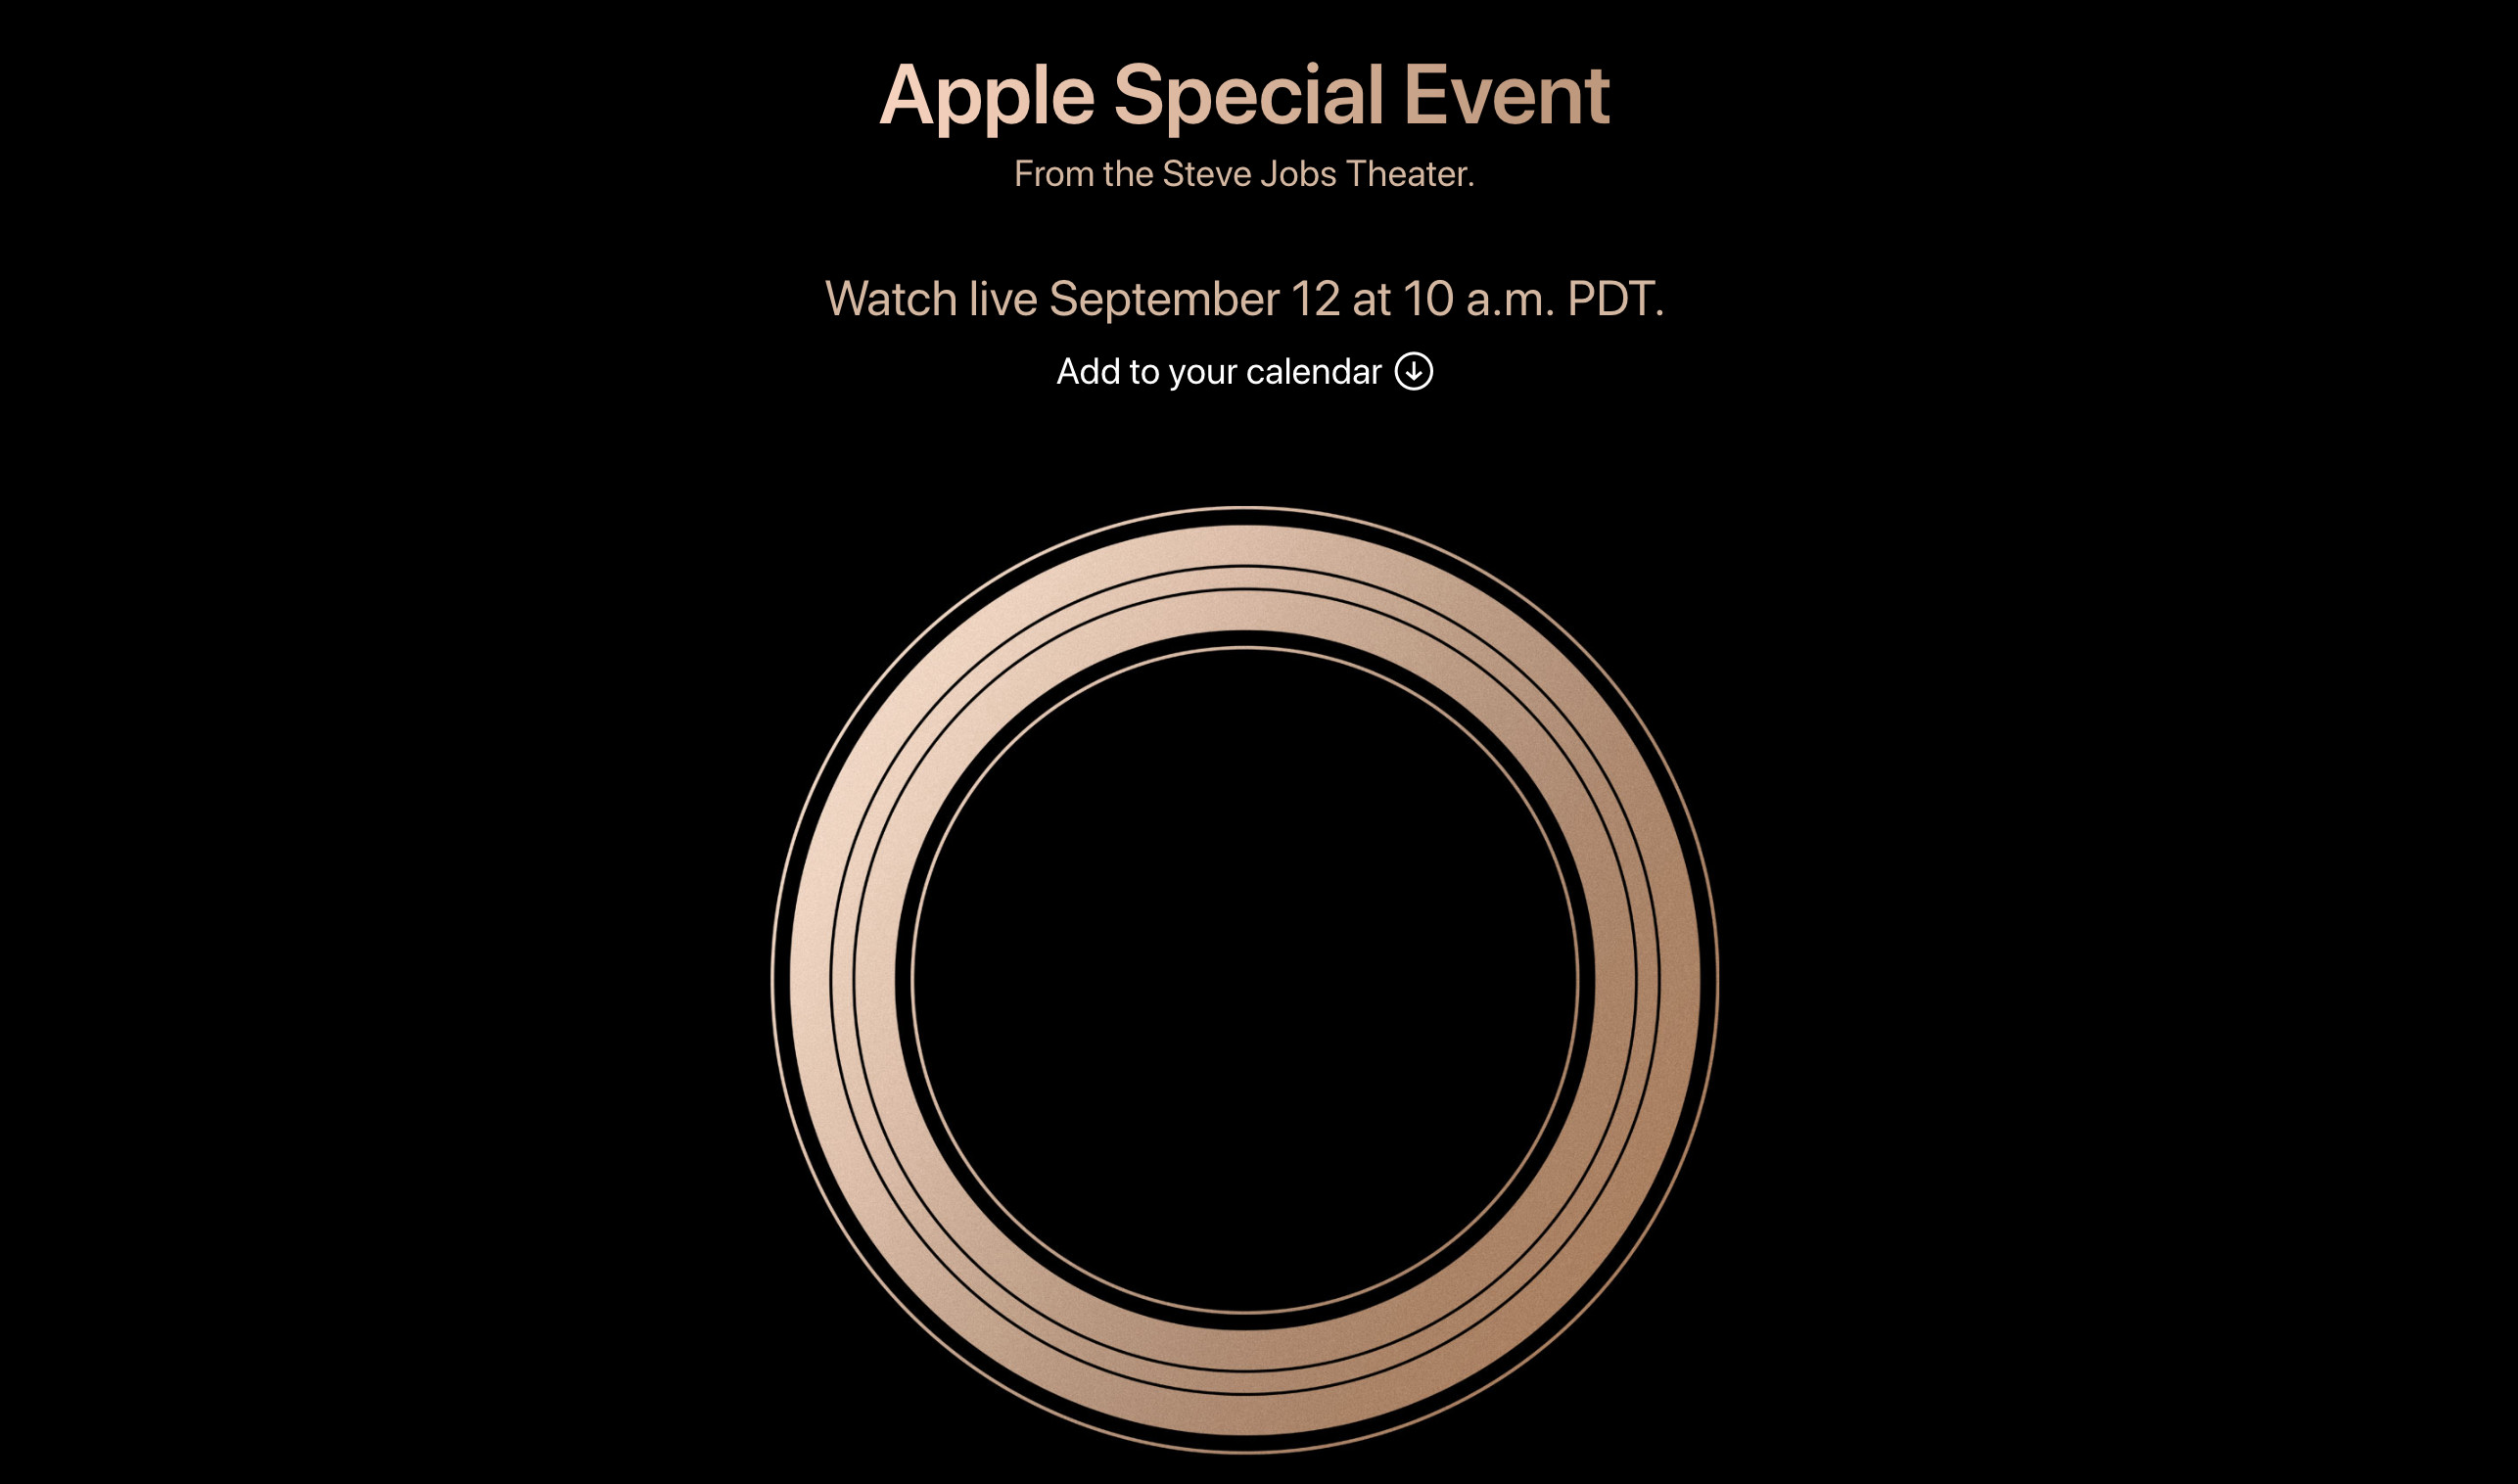 Apple event: Product launch starts with Apple Watch Series 4